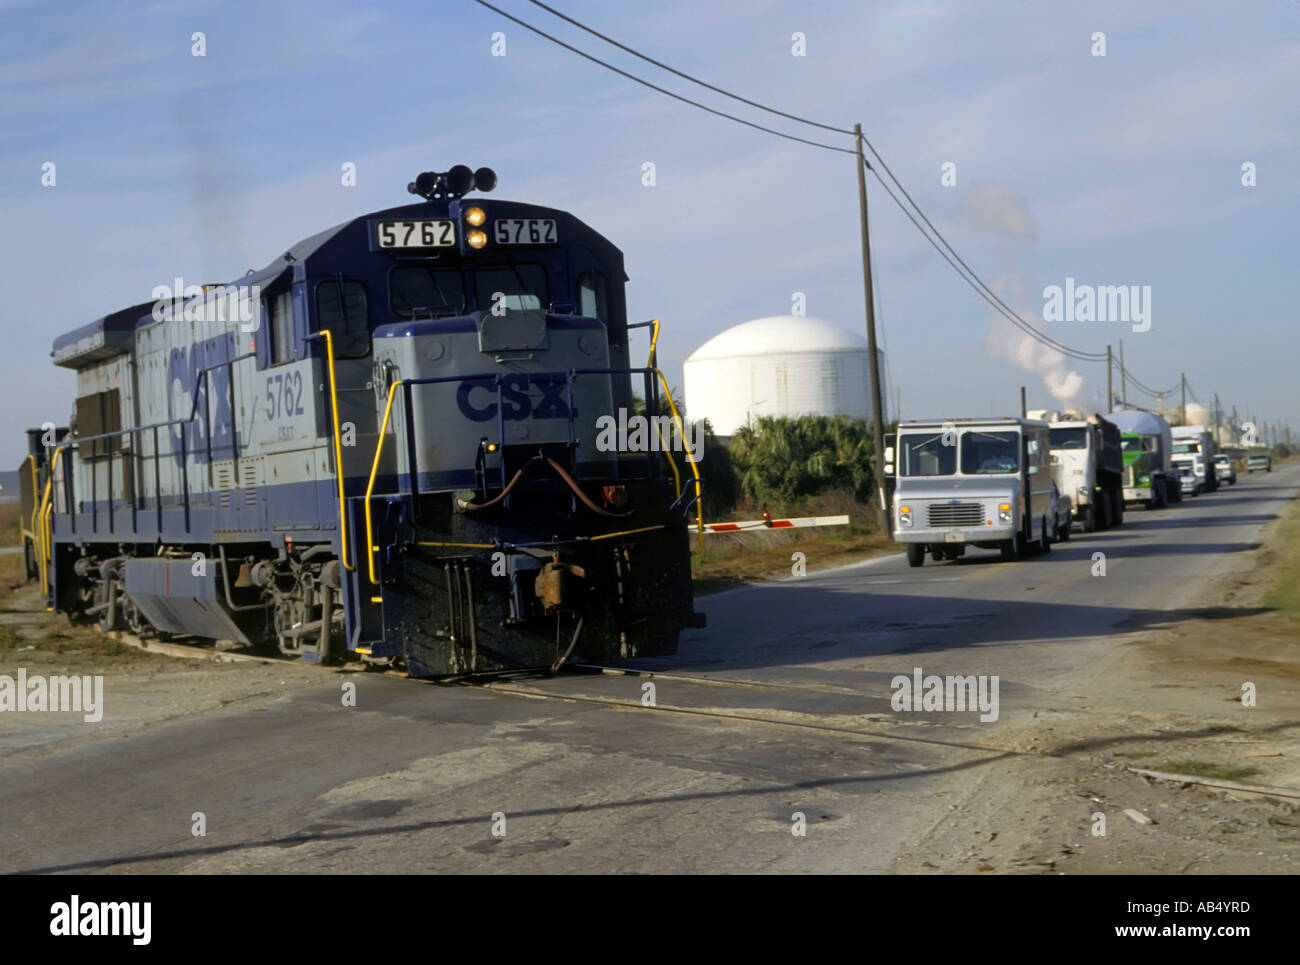 Railroad crossing with diesel train crossing a highway and